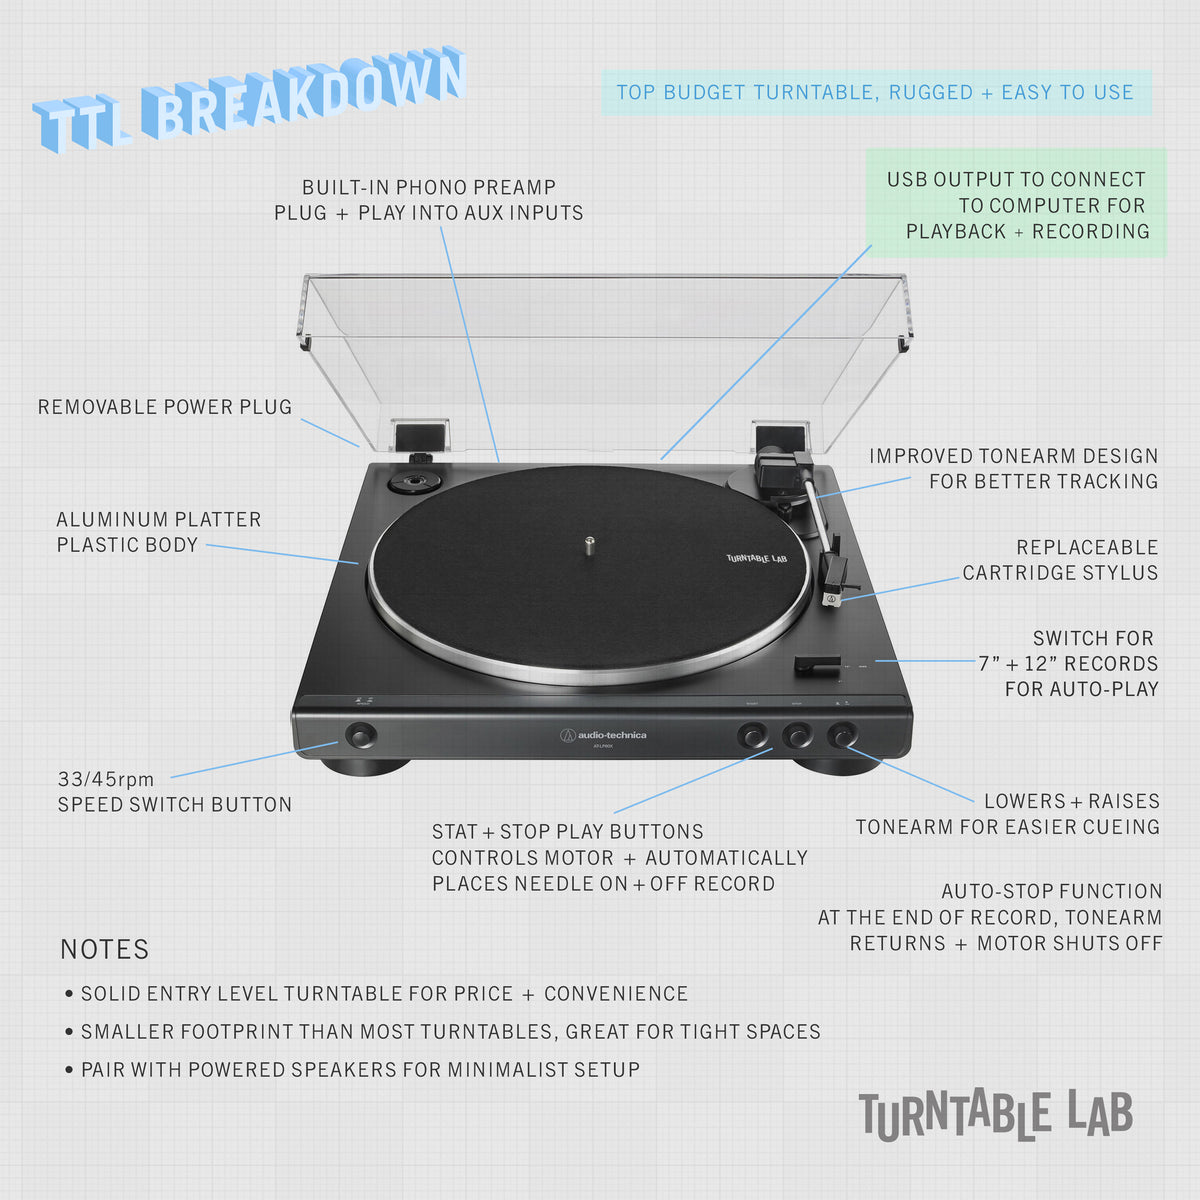 Audio Technica: AT-LP60XUSB-GM Turntable Review